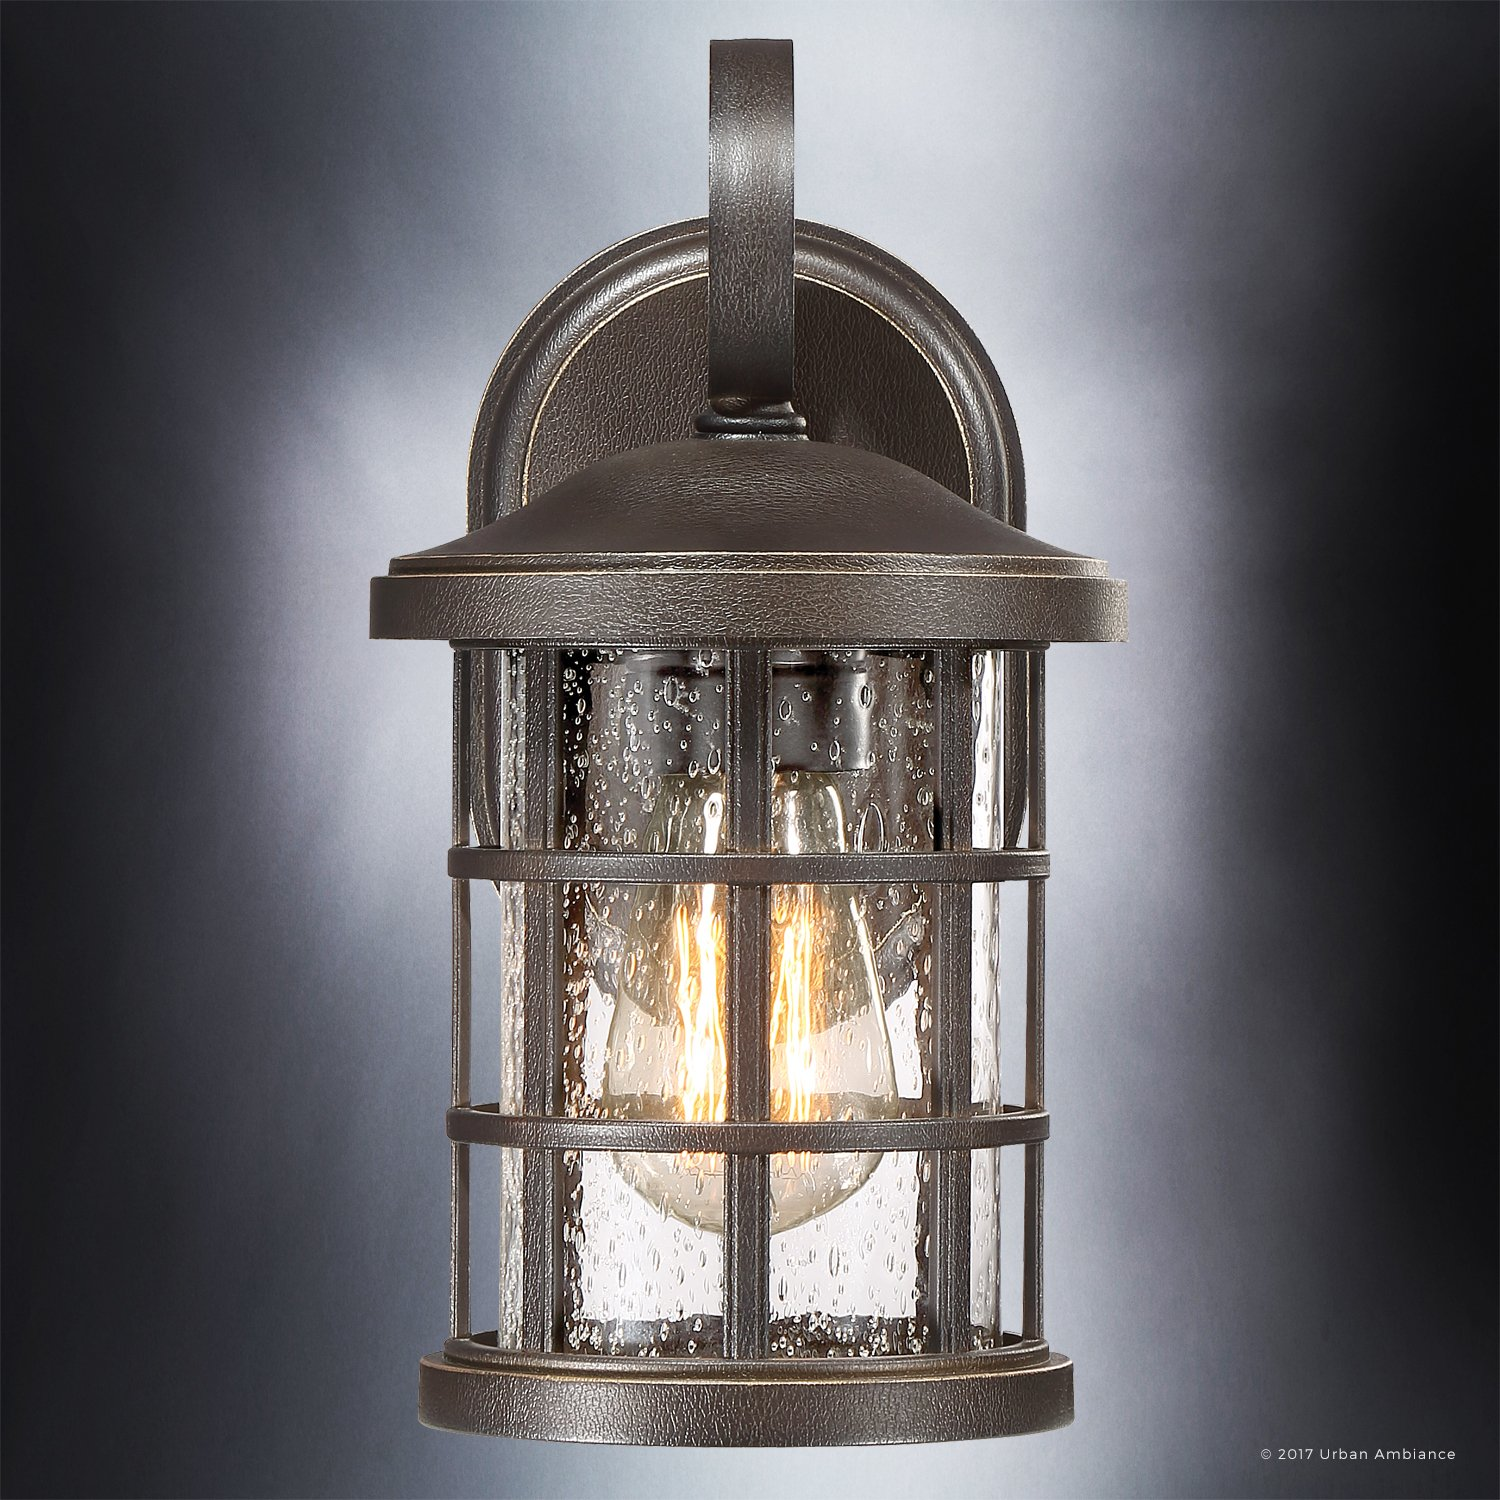 Luxury Craftsman Outdoor Wall Light, Small Size: 11'' H x 6'' W, with Tudor Style Elements, Wrought Iron Design, Oil Rubbed Parisian Bronze Finish and Seeded Glass, UQL1041 by Urban Ambiance by Urban Ambiance (Image #5)